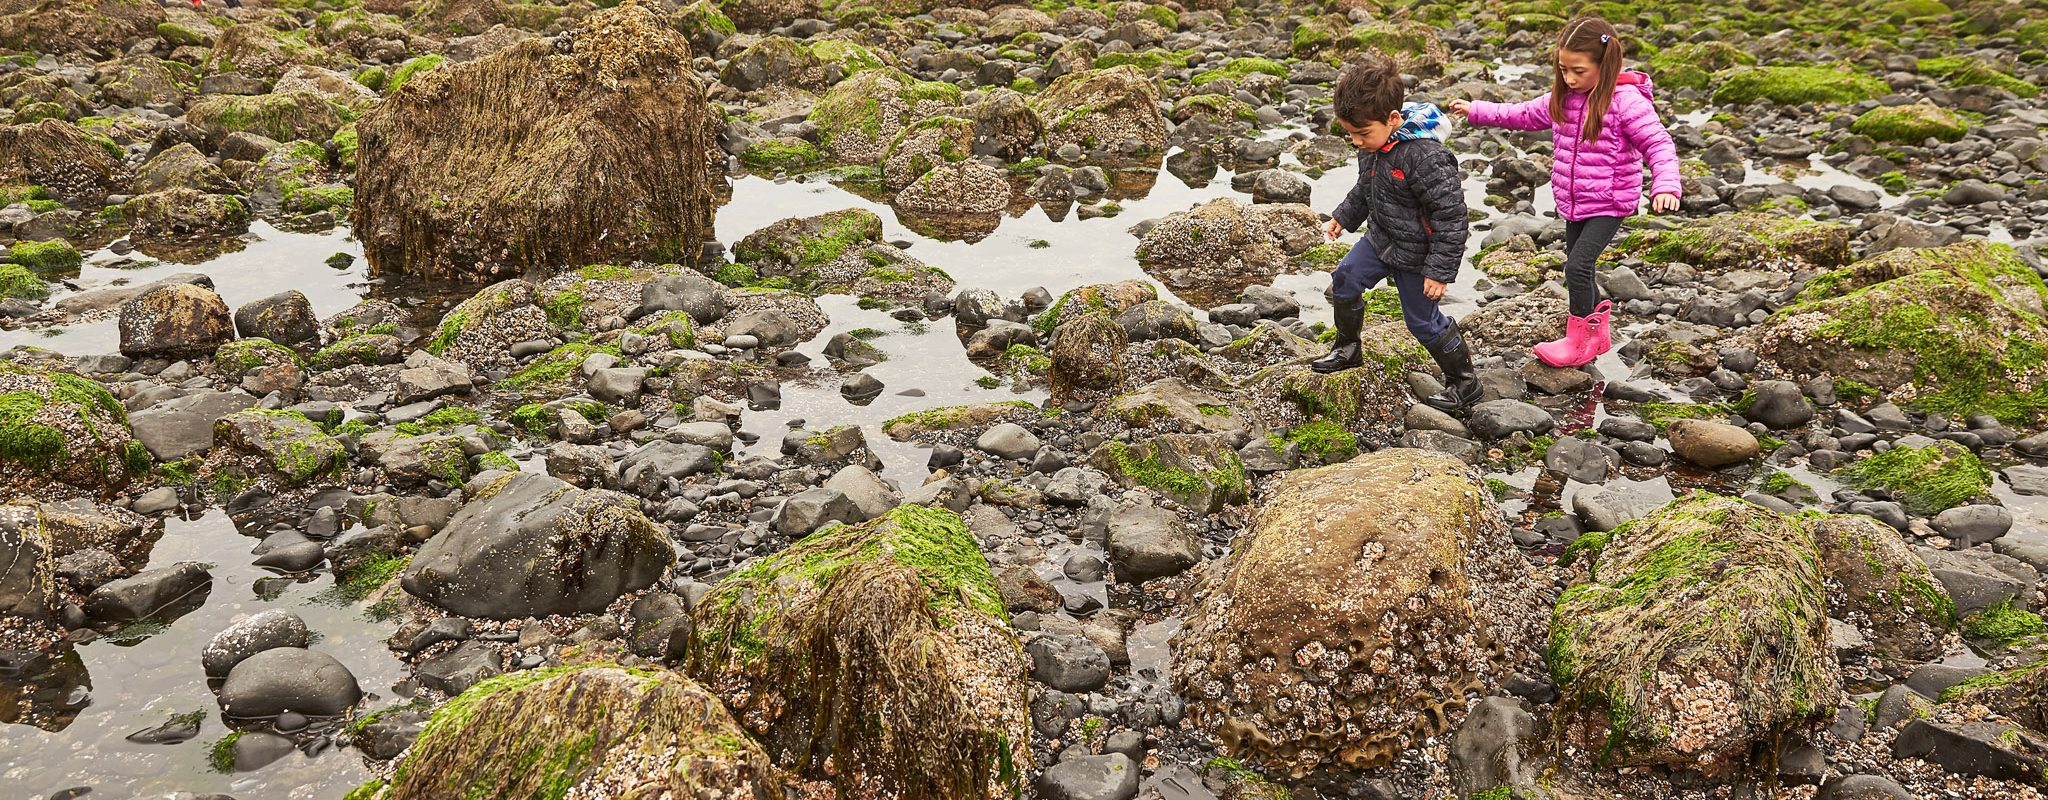 Kids playing in the tide pools in Cannon Beach, Oregon.